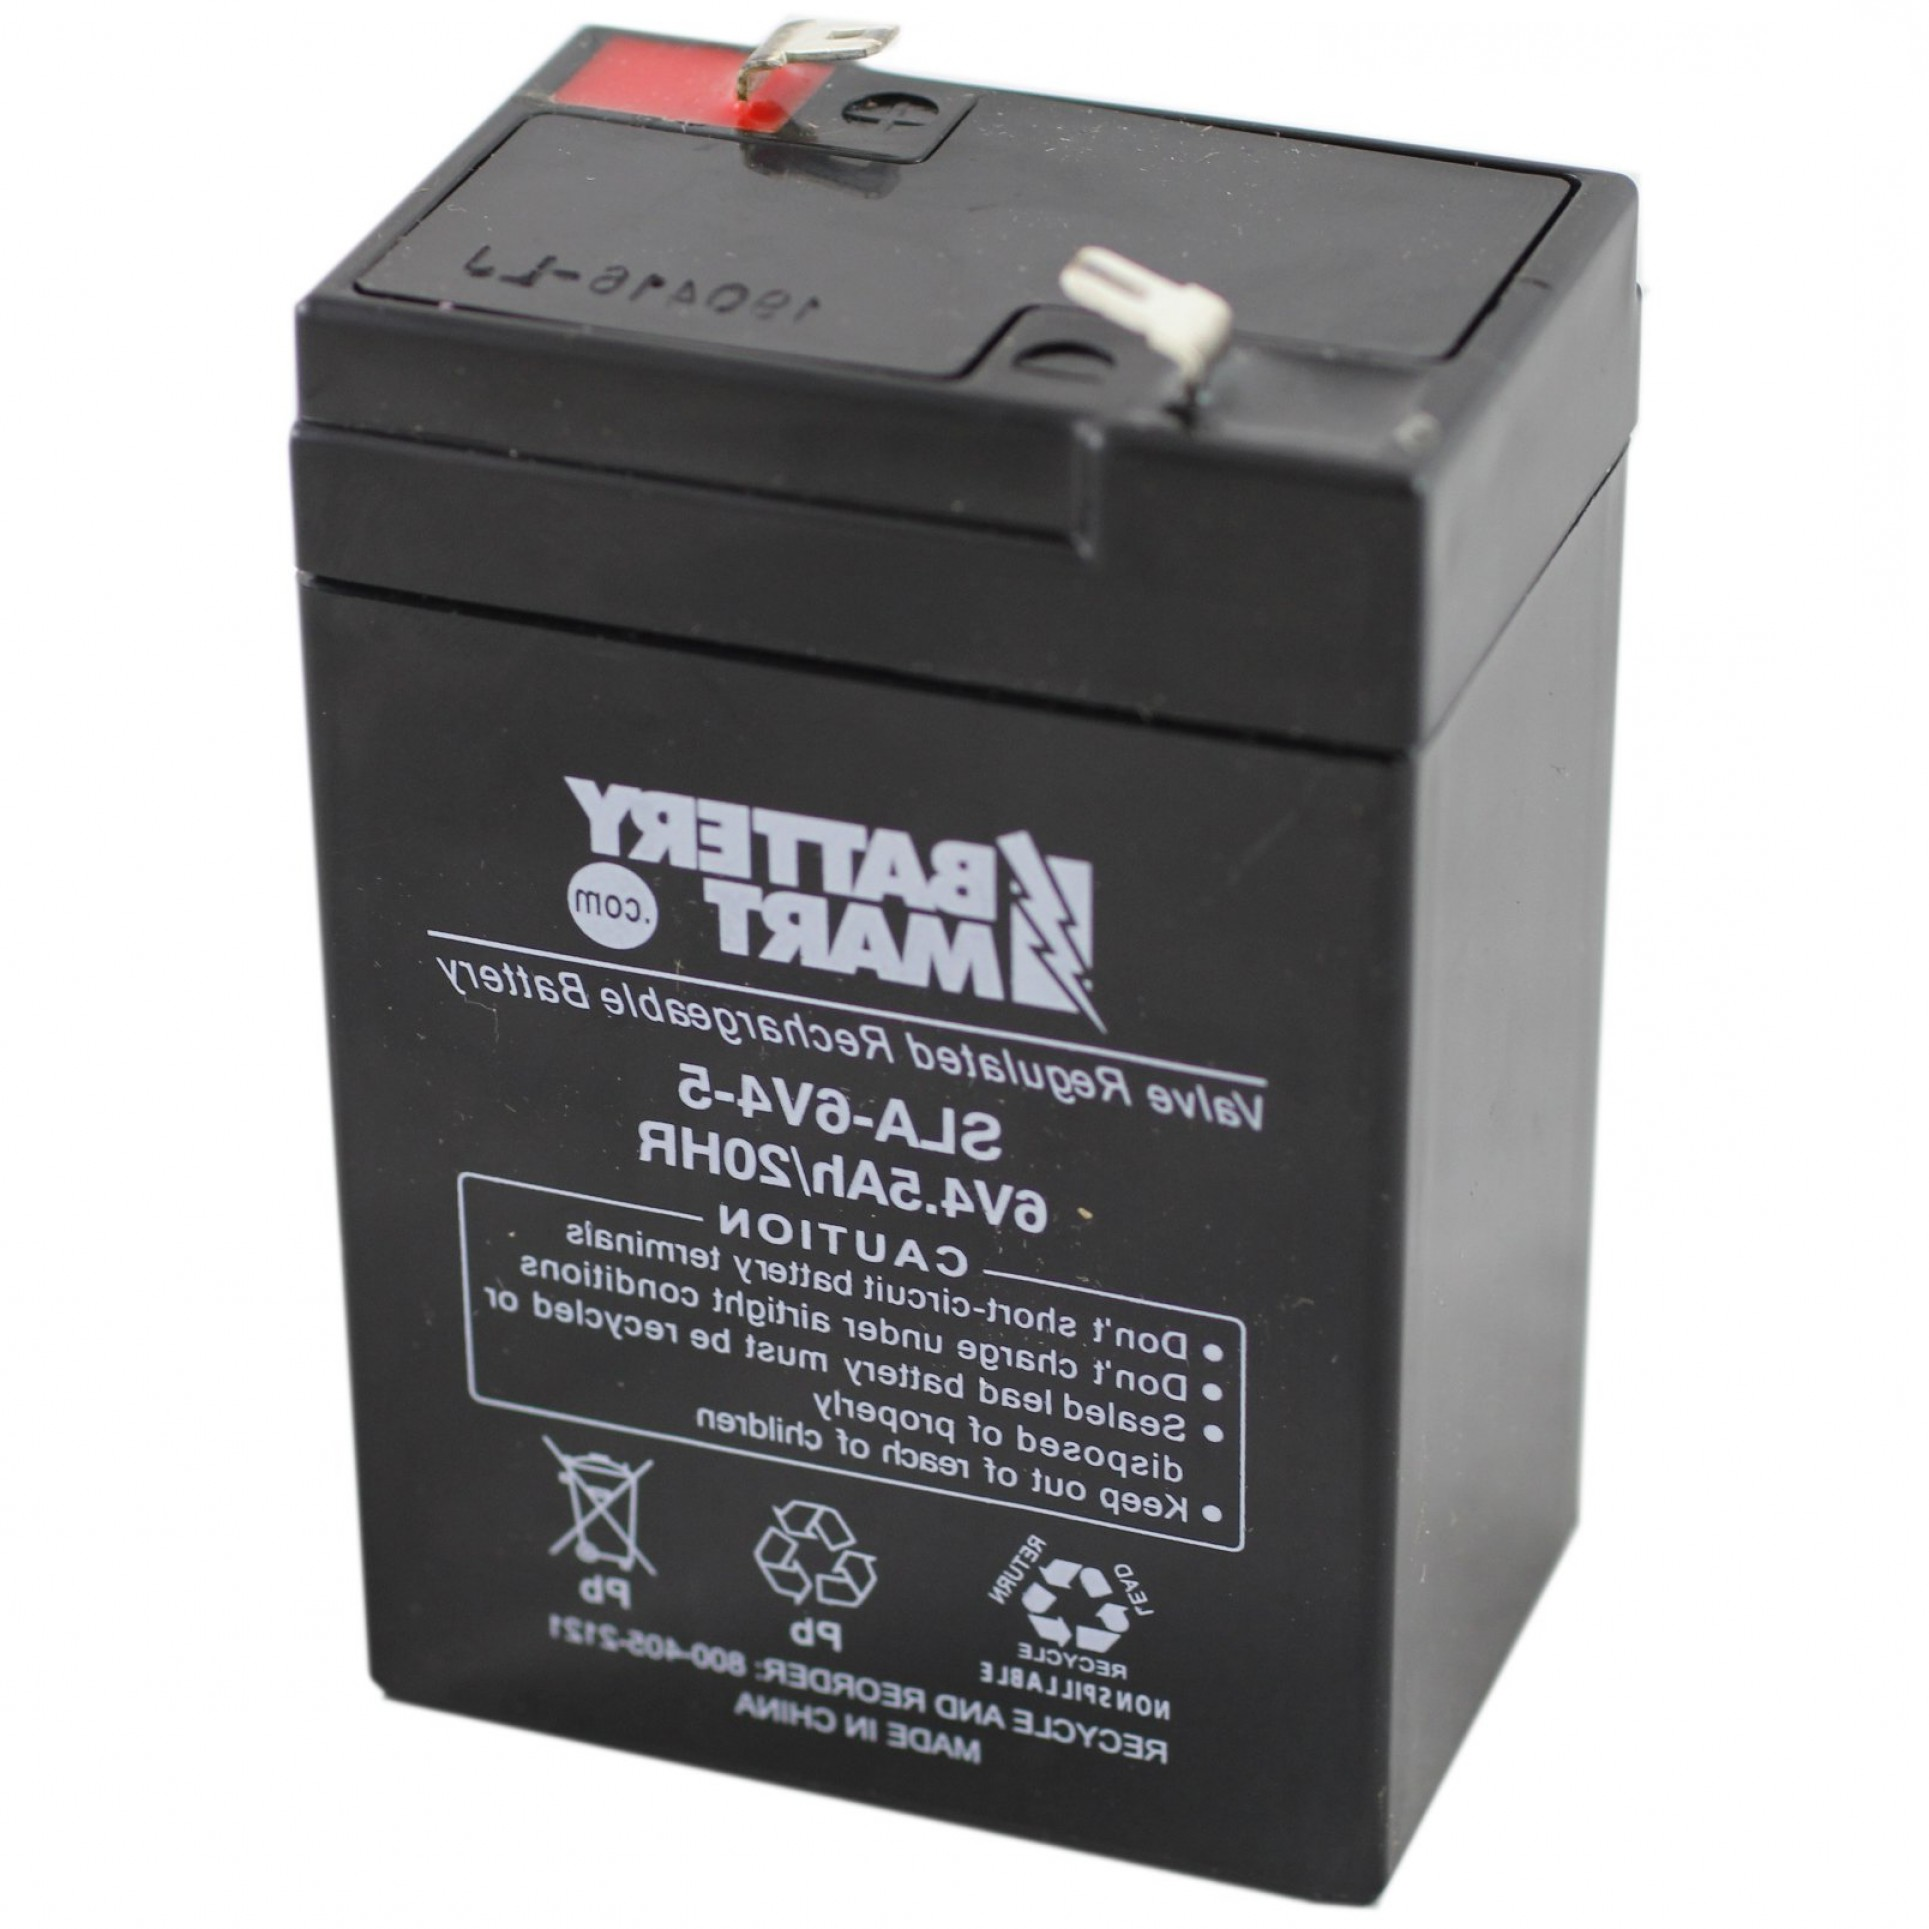 Vector Sport Spot Battery Charger For: P V Ah Sealed Lead Acid Battery